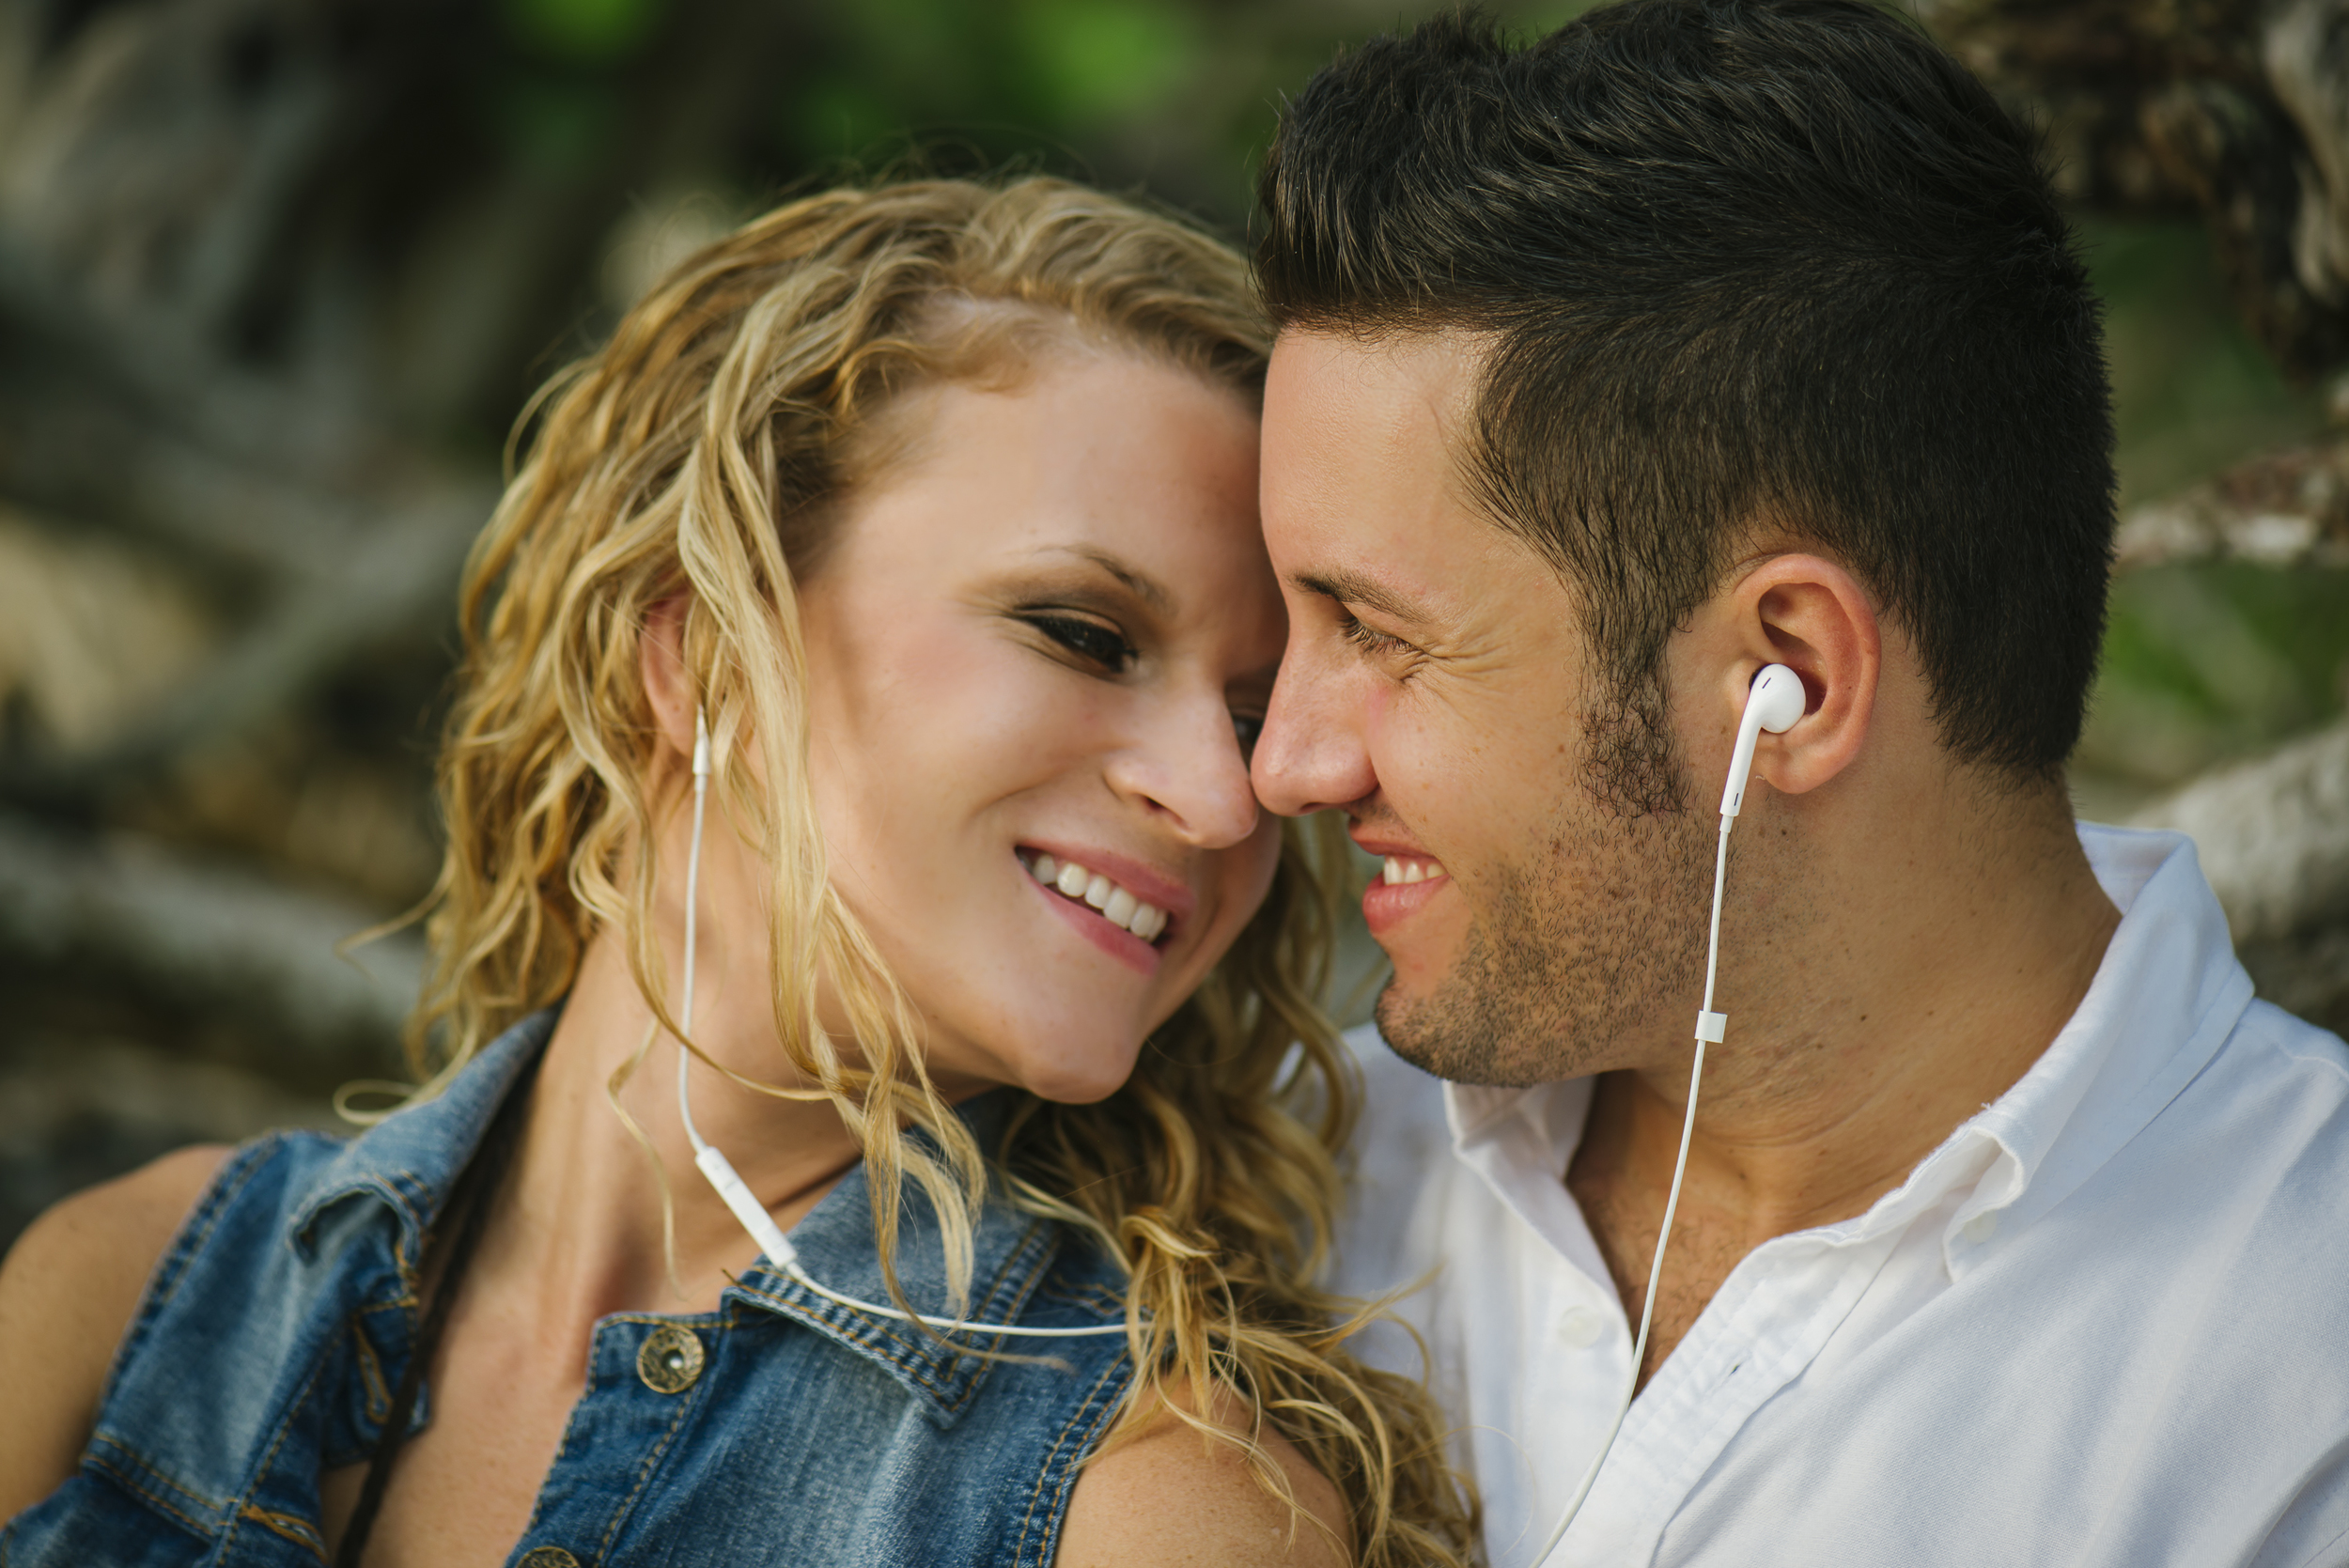 ipod earbud couple photo